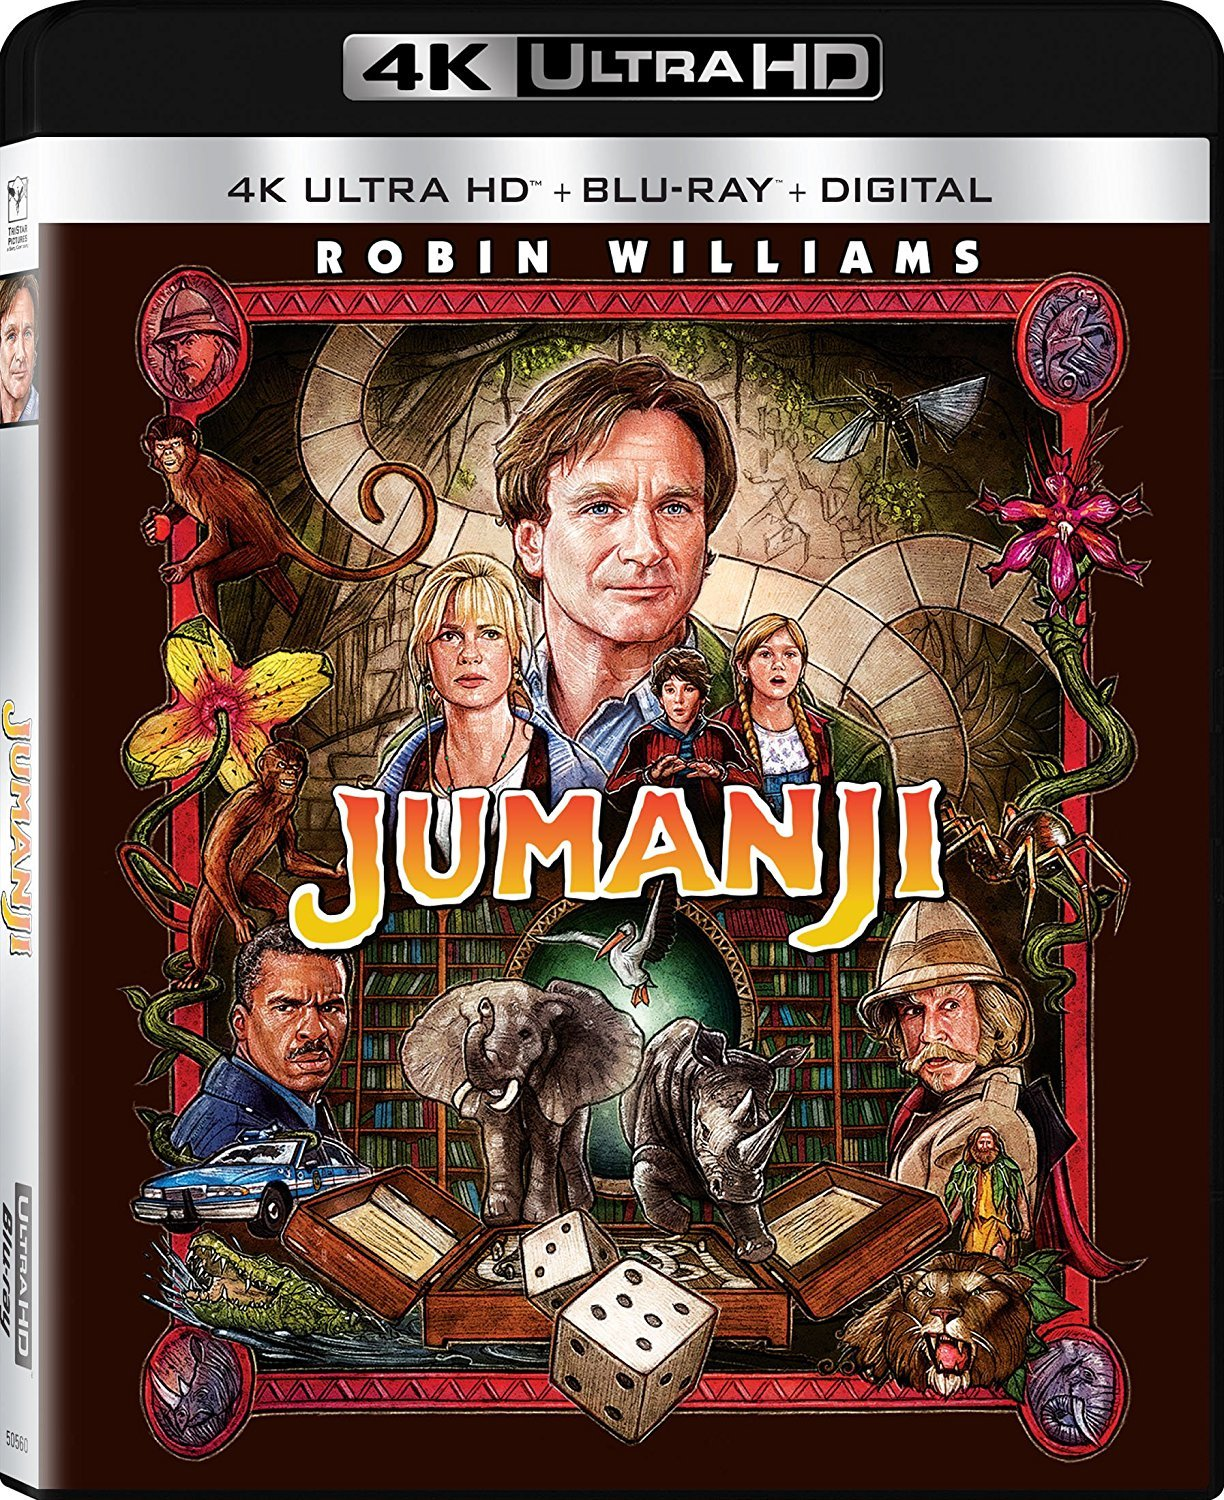 Jumanji 4K (1995) Ultra HD Blu-ray